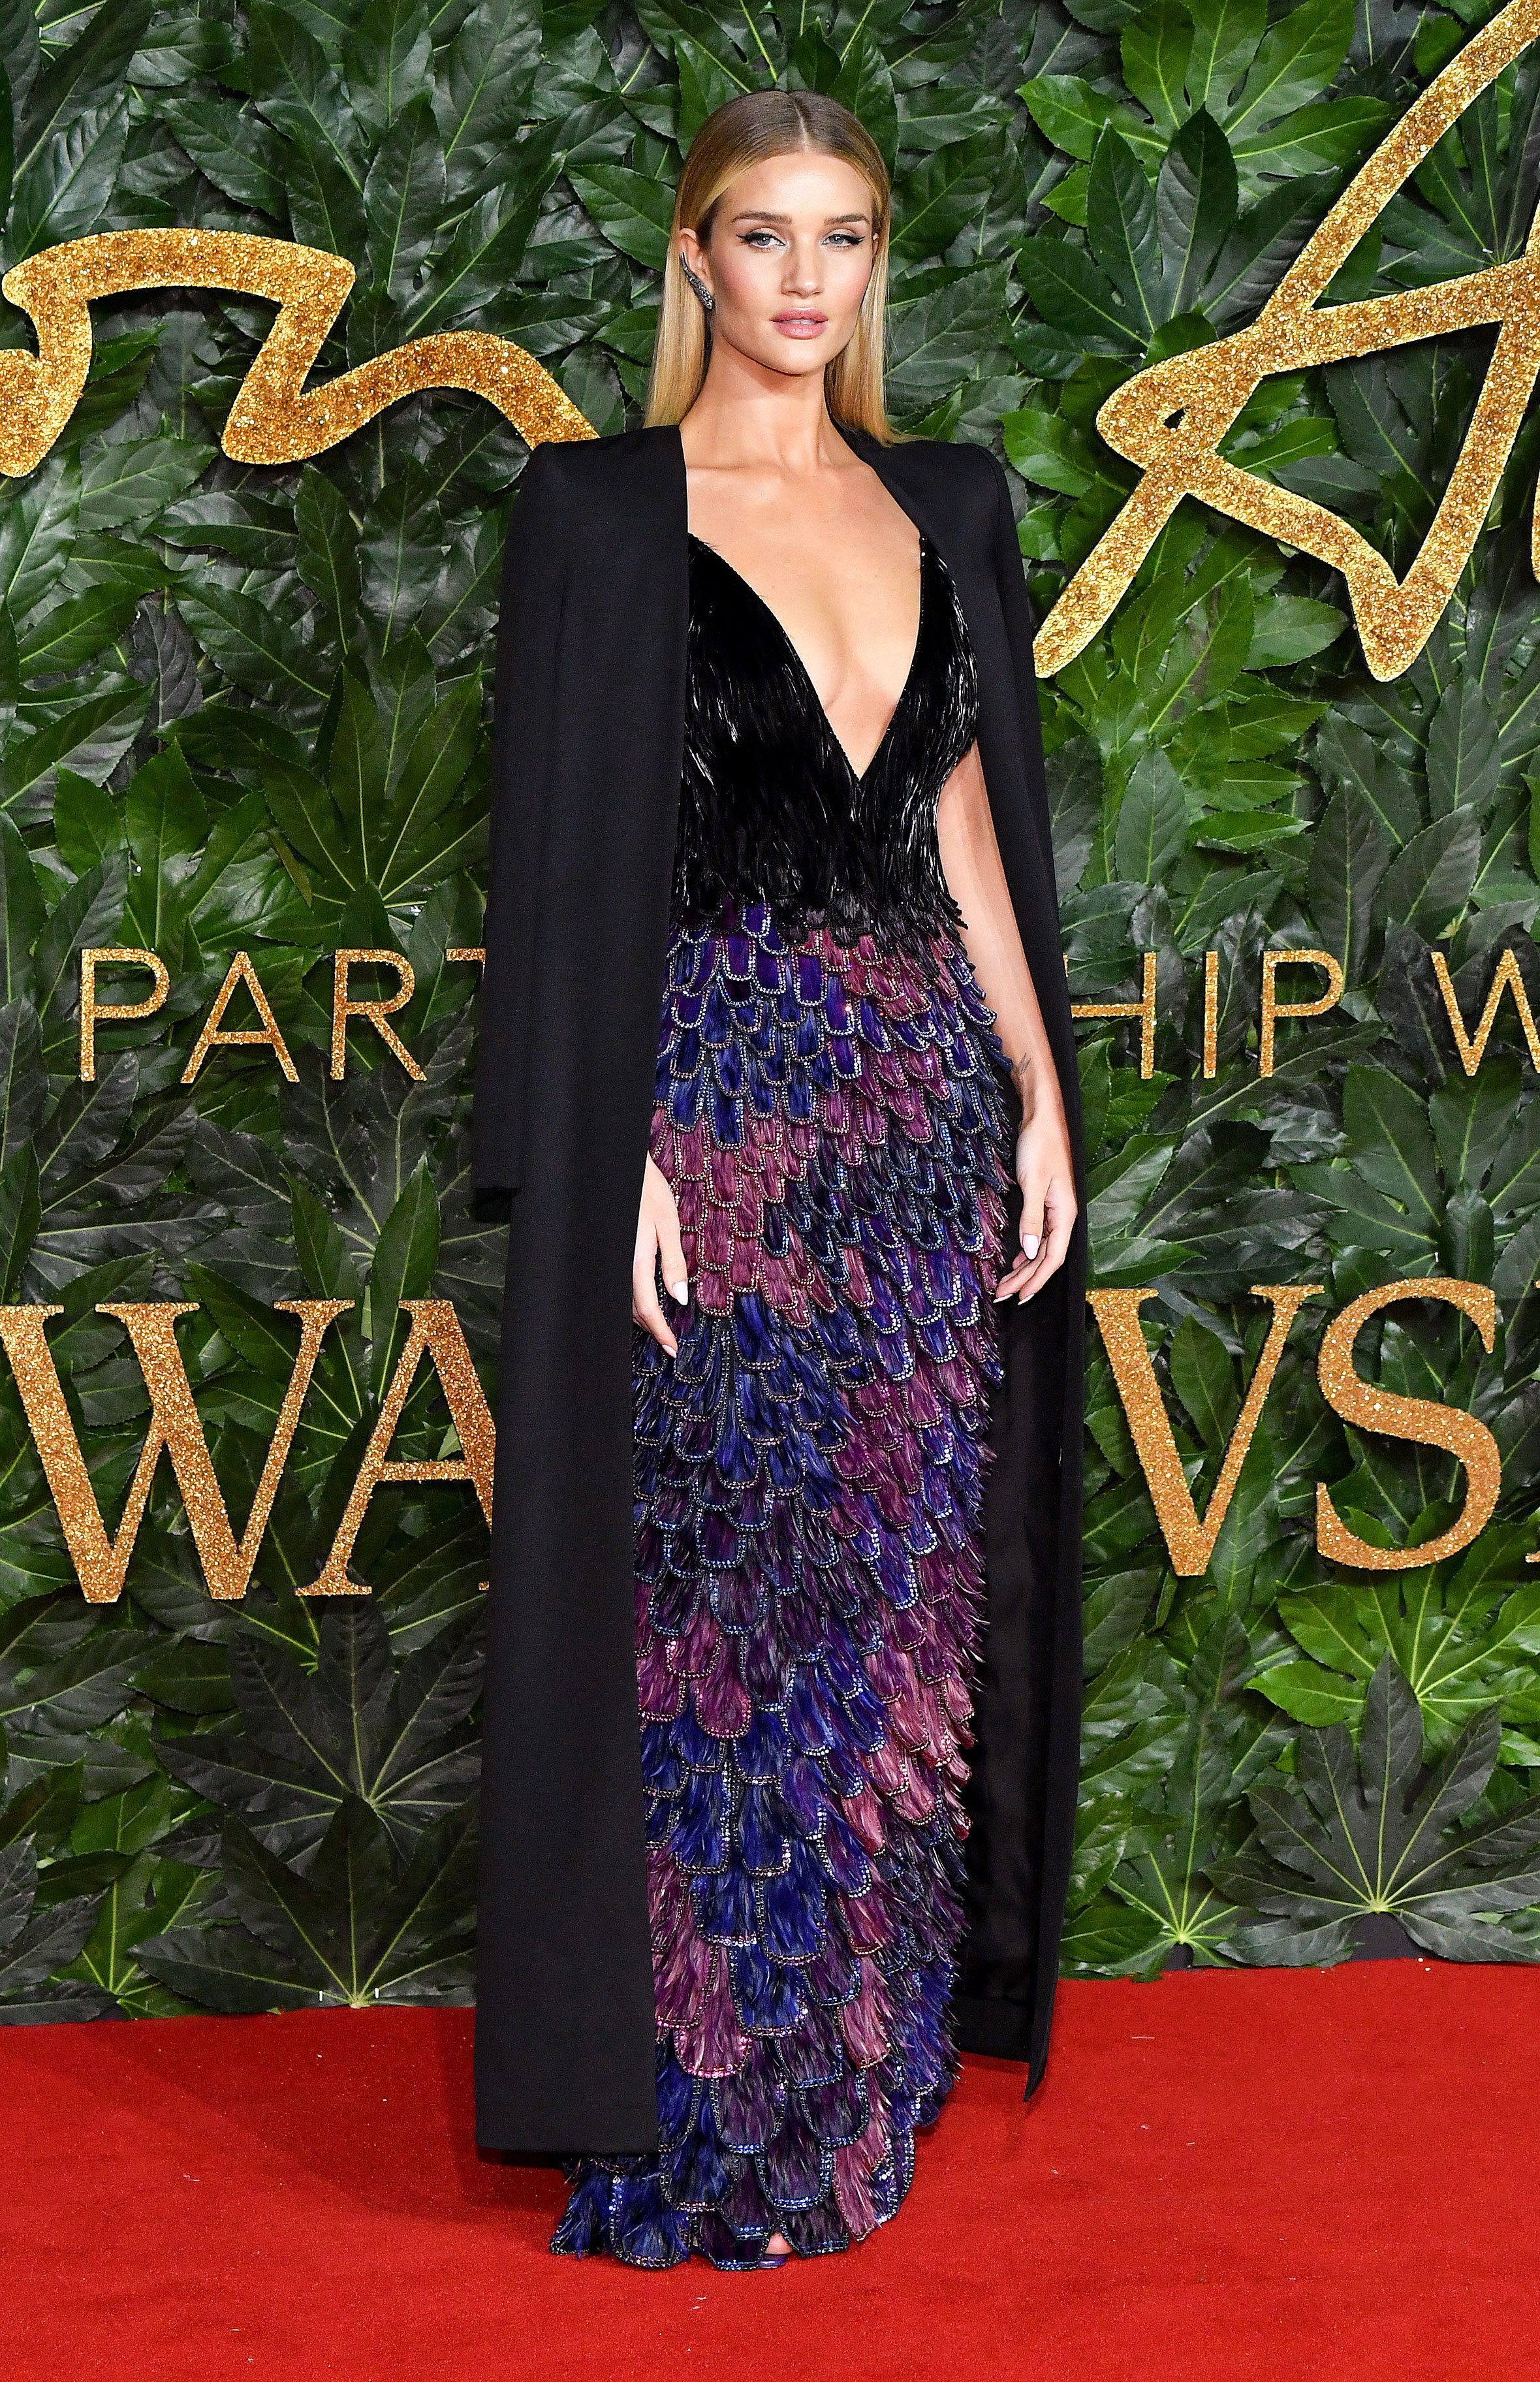 Rosie-Huntington-Whiteley - Mirroring Duchess Meghan, the model was statuesque in a tiered velvet Givenchy gown and dramatic cape.